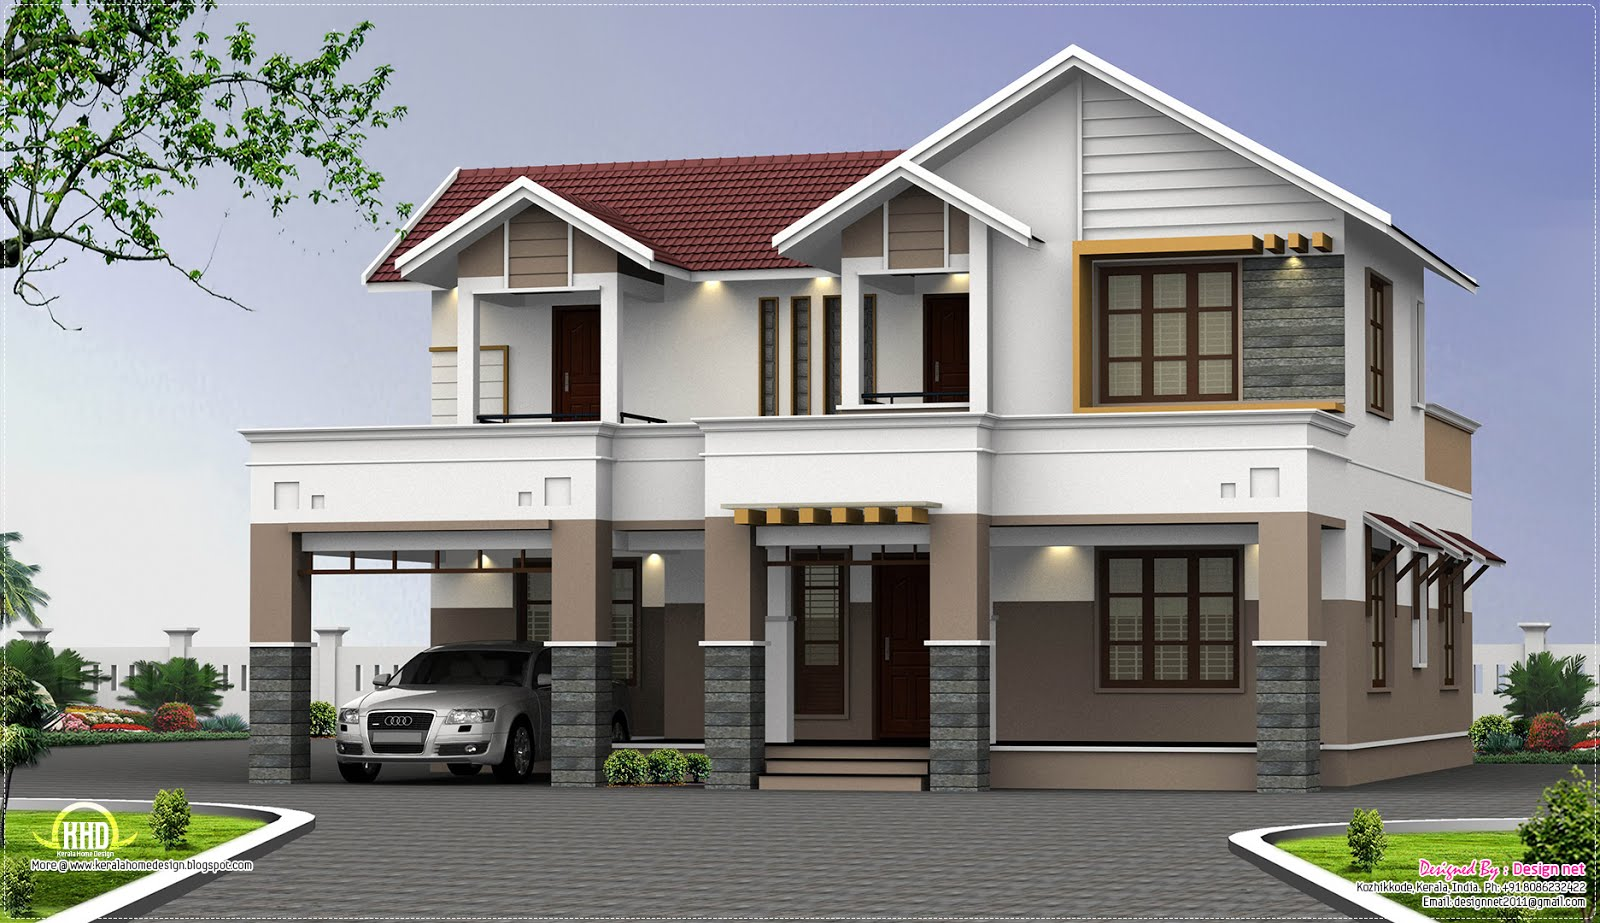 2storey home design - 44+ Floor Plan Small House Design 2 Storey Images